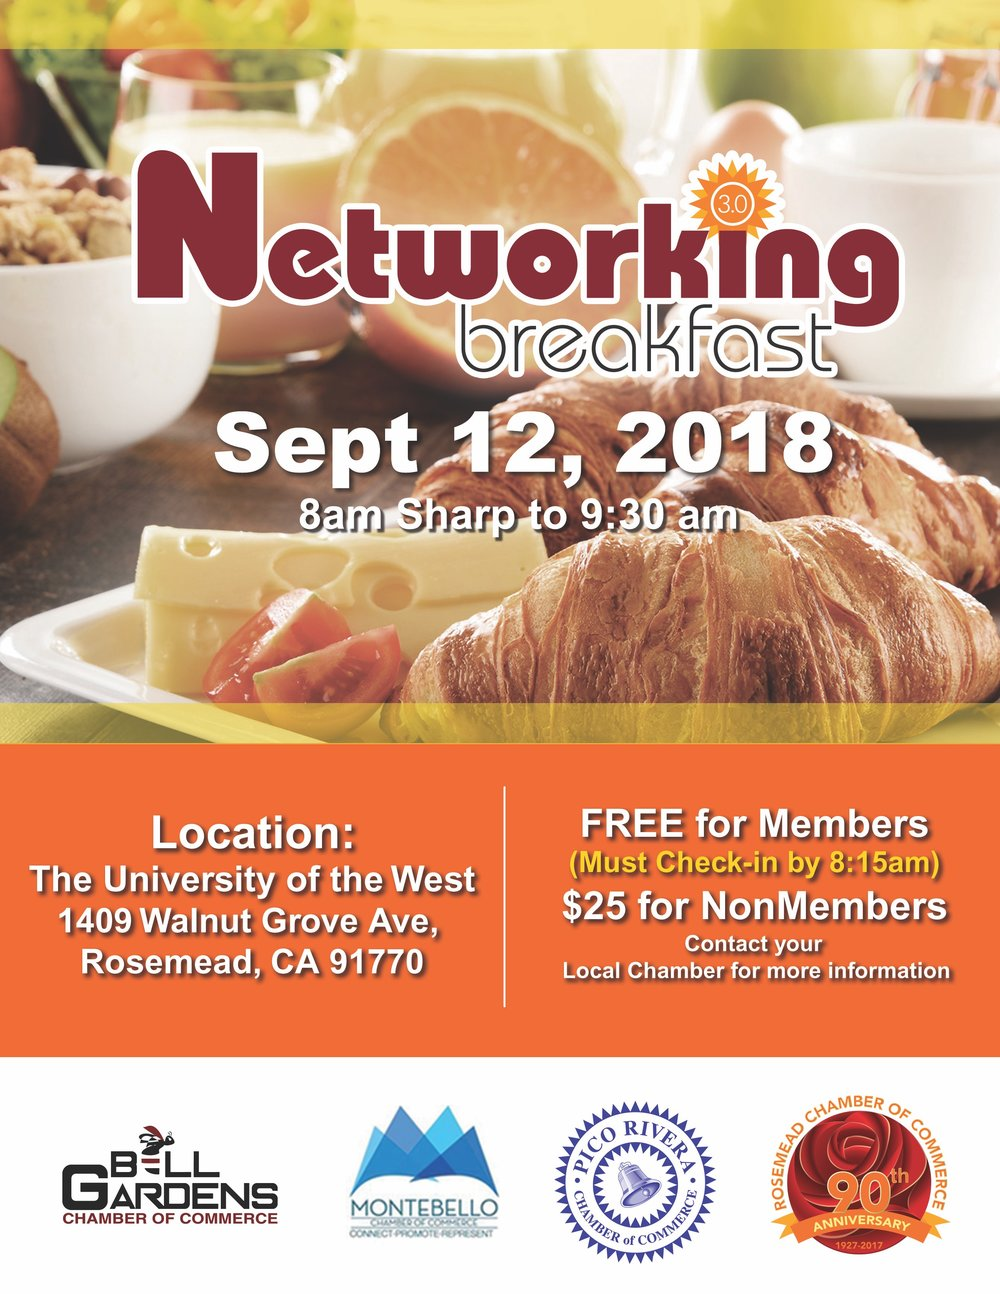 Networking breakfast 3.0 - September 12th, 2018